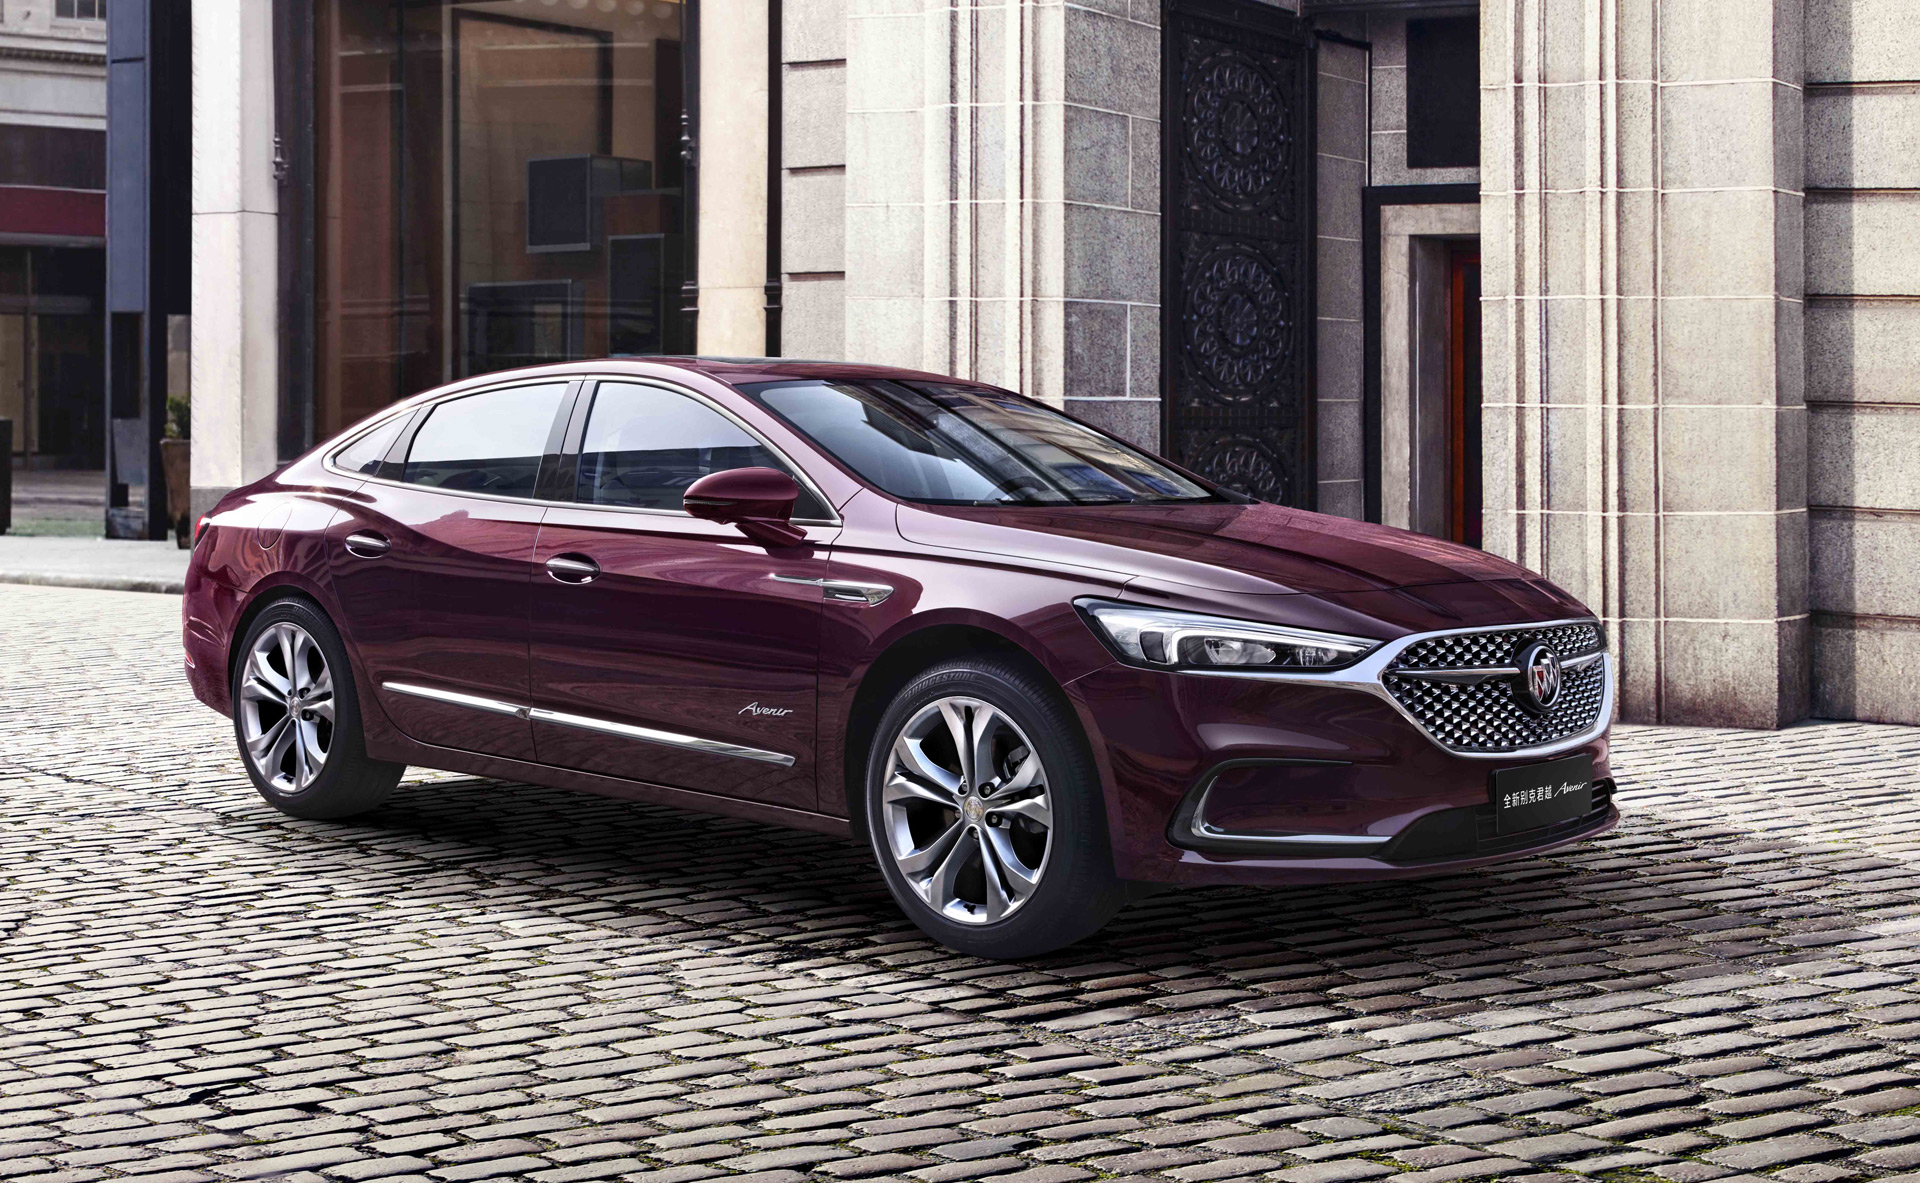 2020 Buick Lacrosse Made Handsome Just As It's Dropped In Us 2022 Buick Lacrosse Exterior Colors, Interior Colors, Dimensions